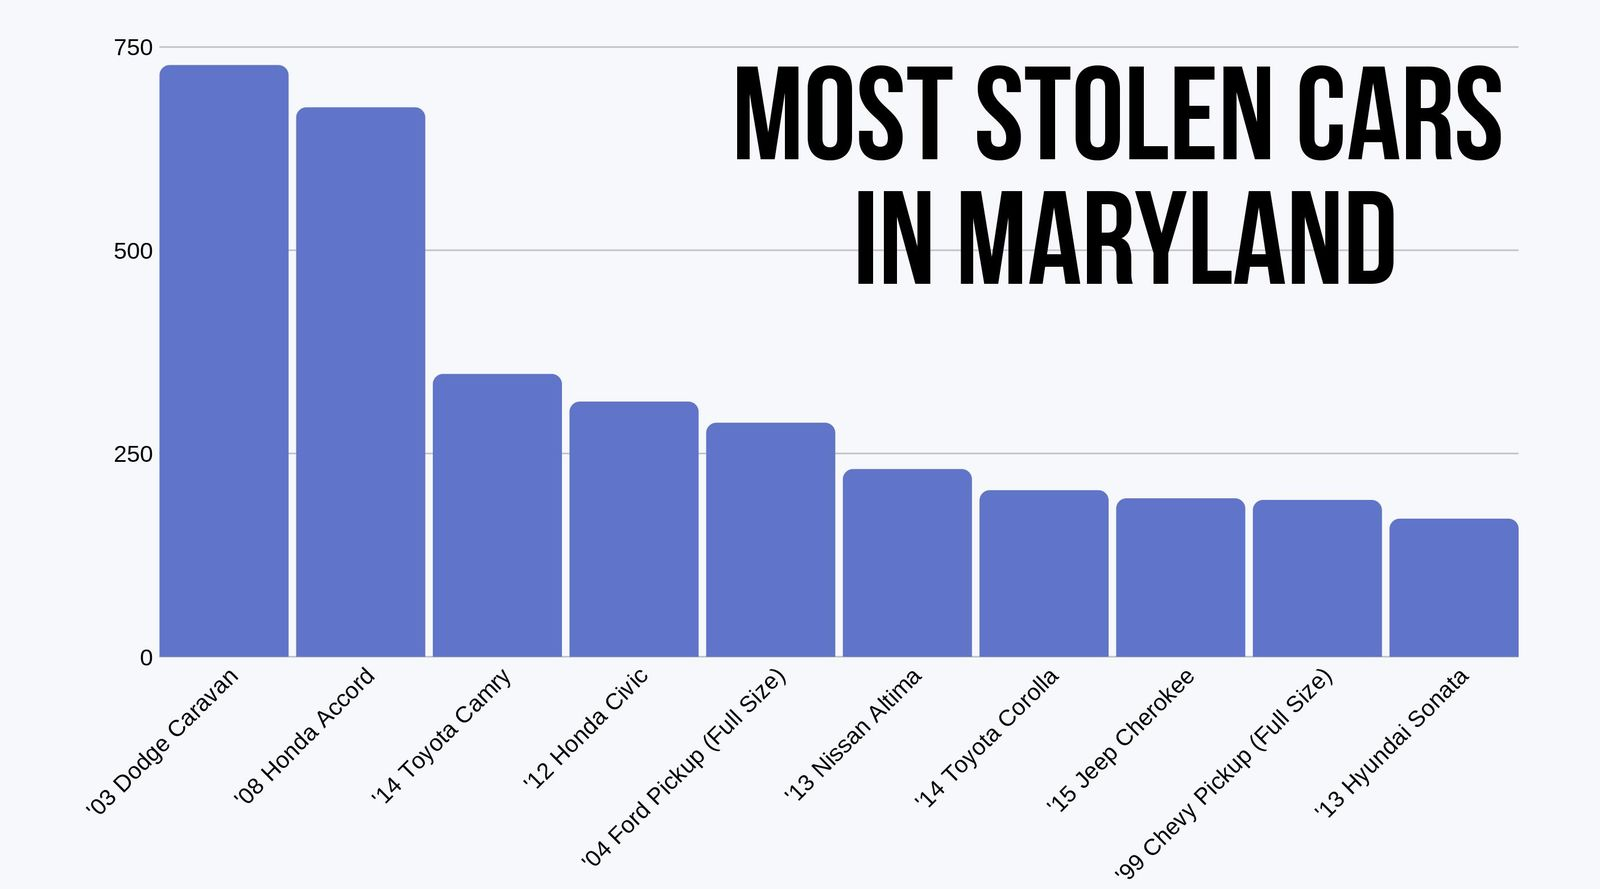 Cars Most Often Stolen in Maryland